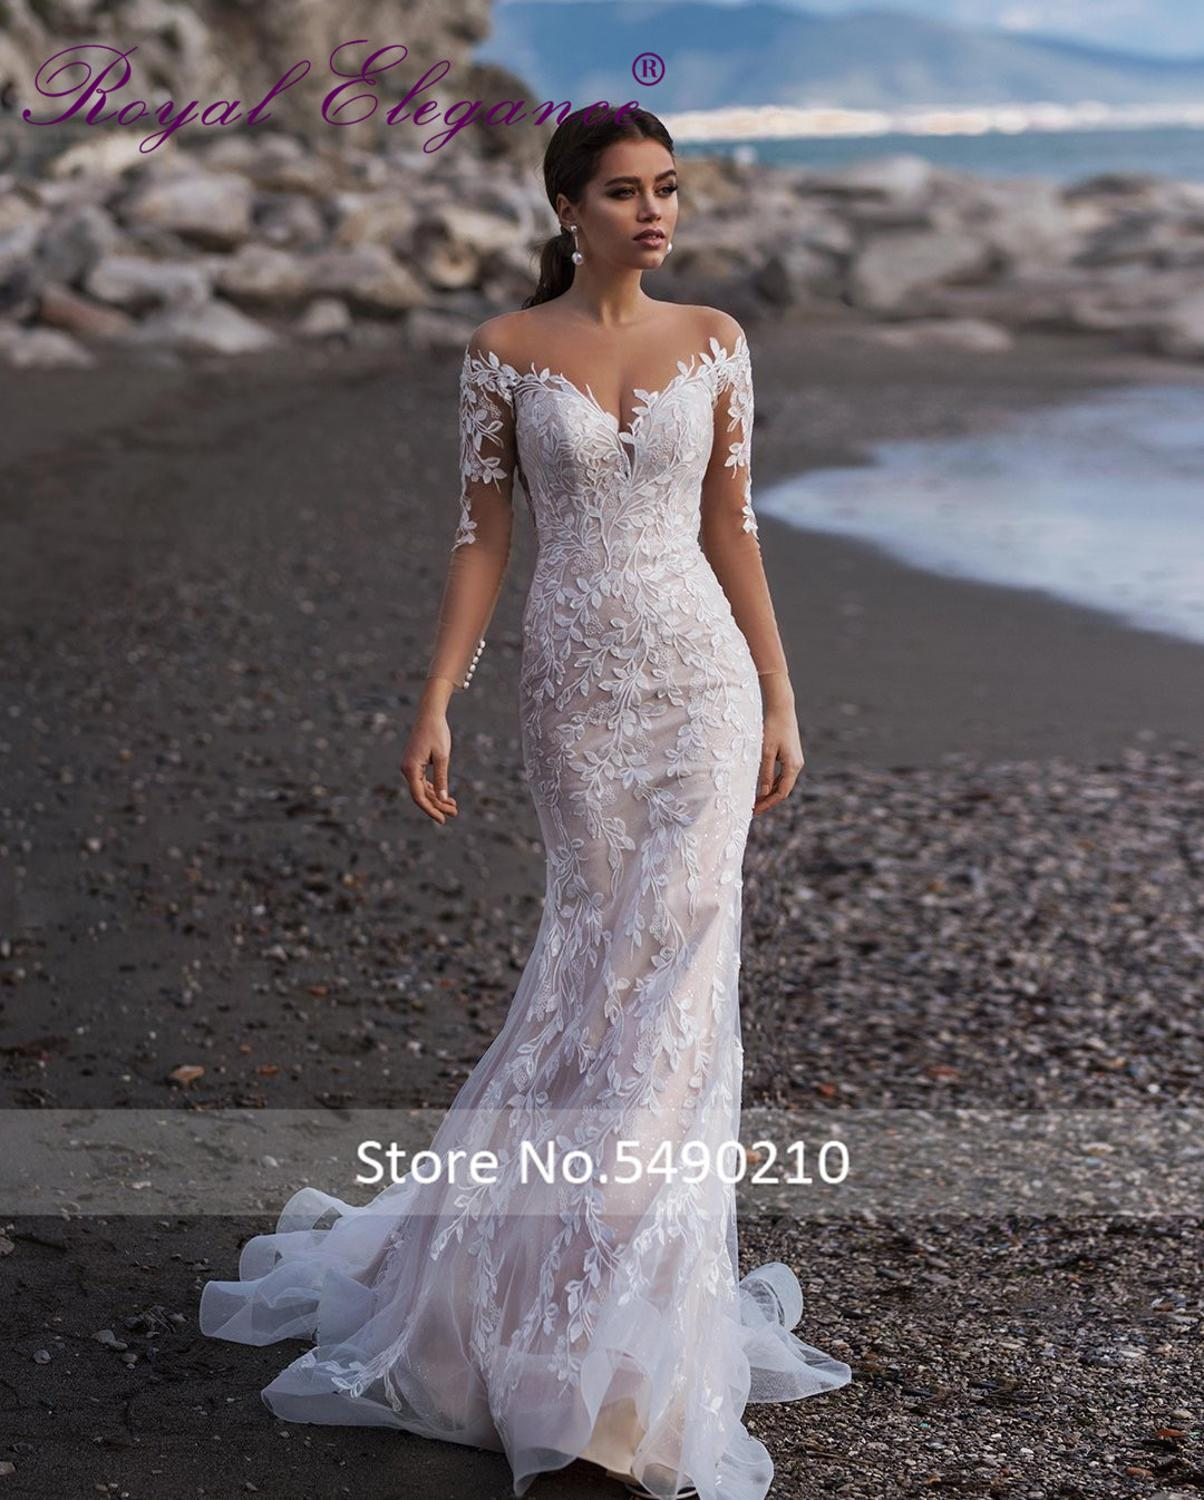 Royal Elegance  Vestido De Noiva Long Sleeve Illusion Neckline Luxury Lace Applique Wedding Dress Abiti Da Sposa